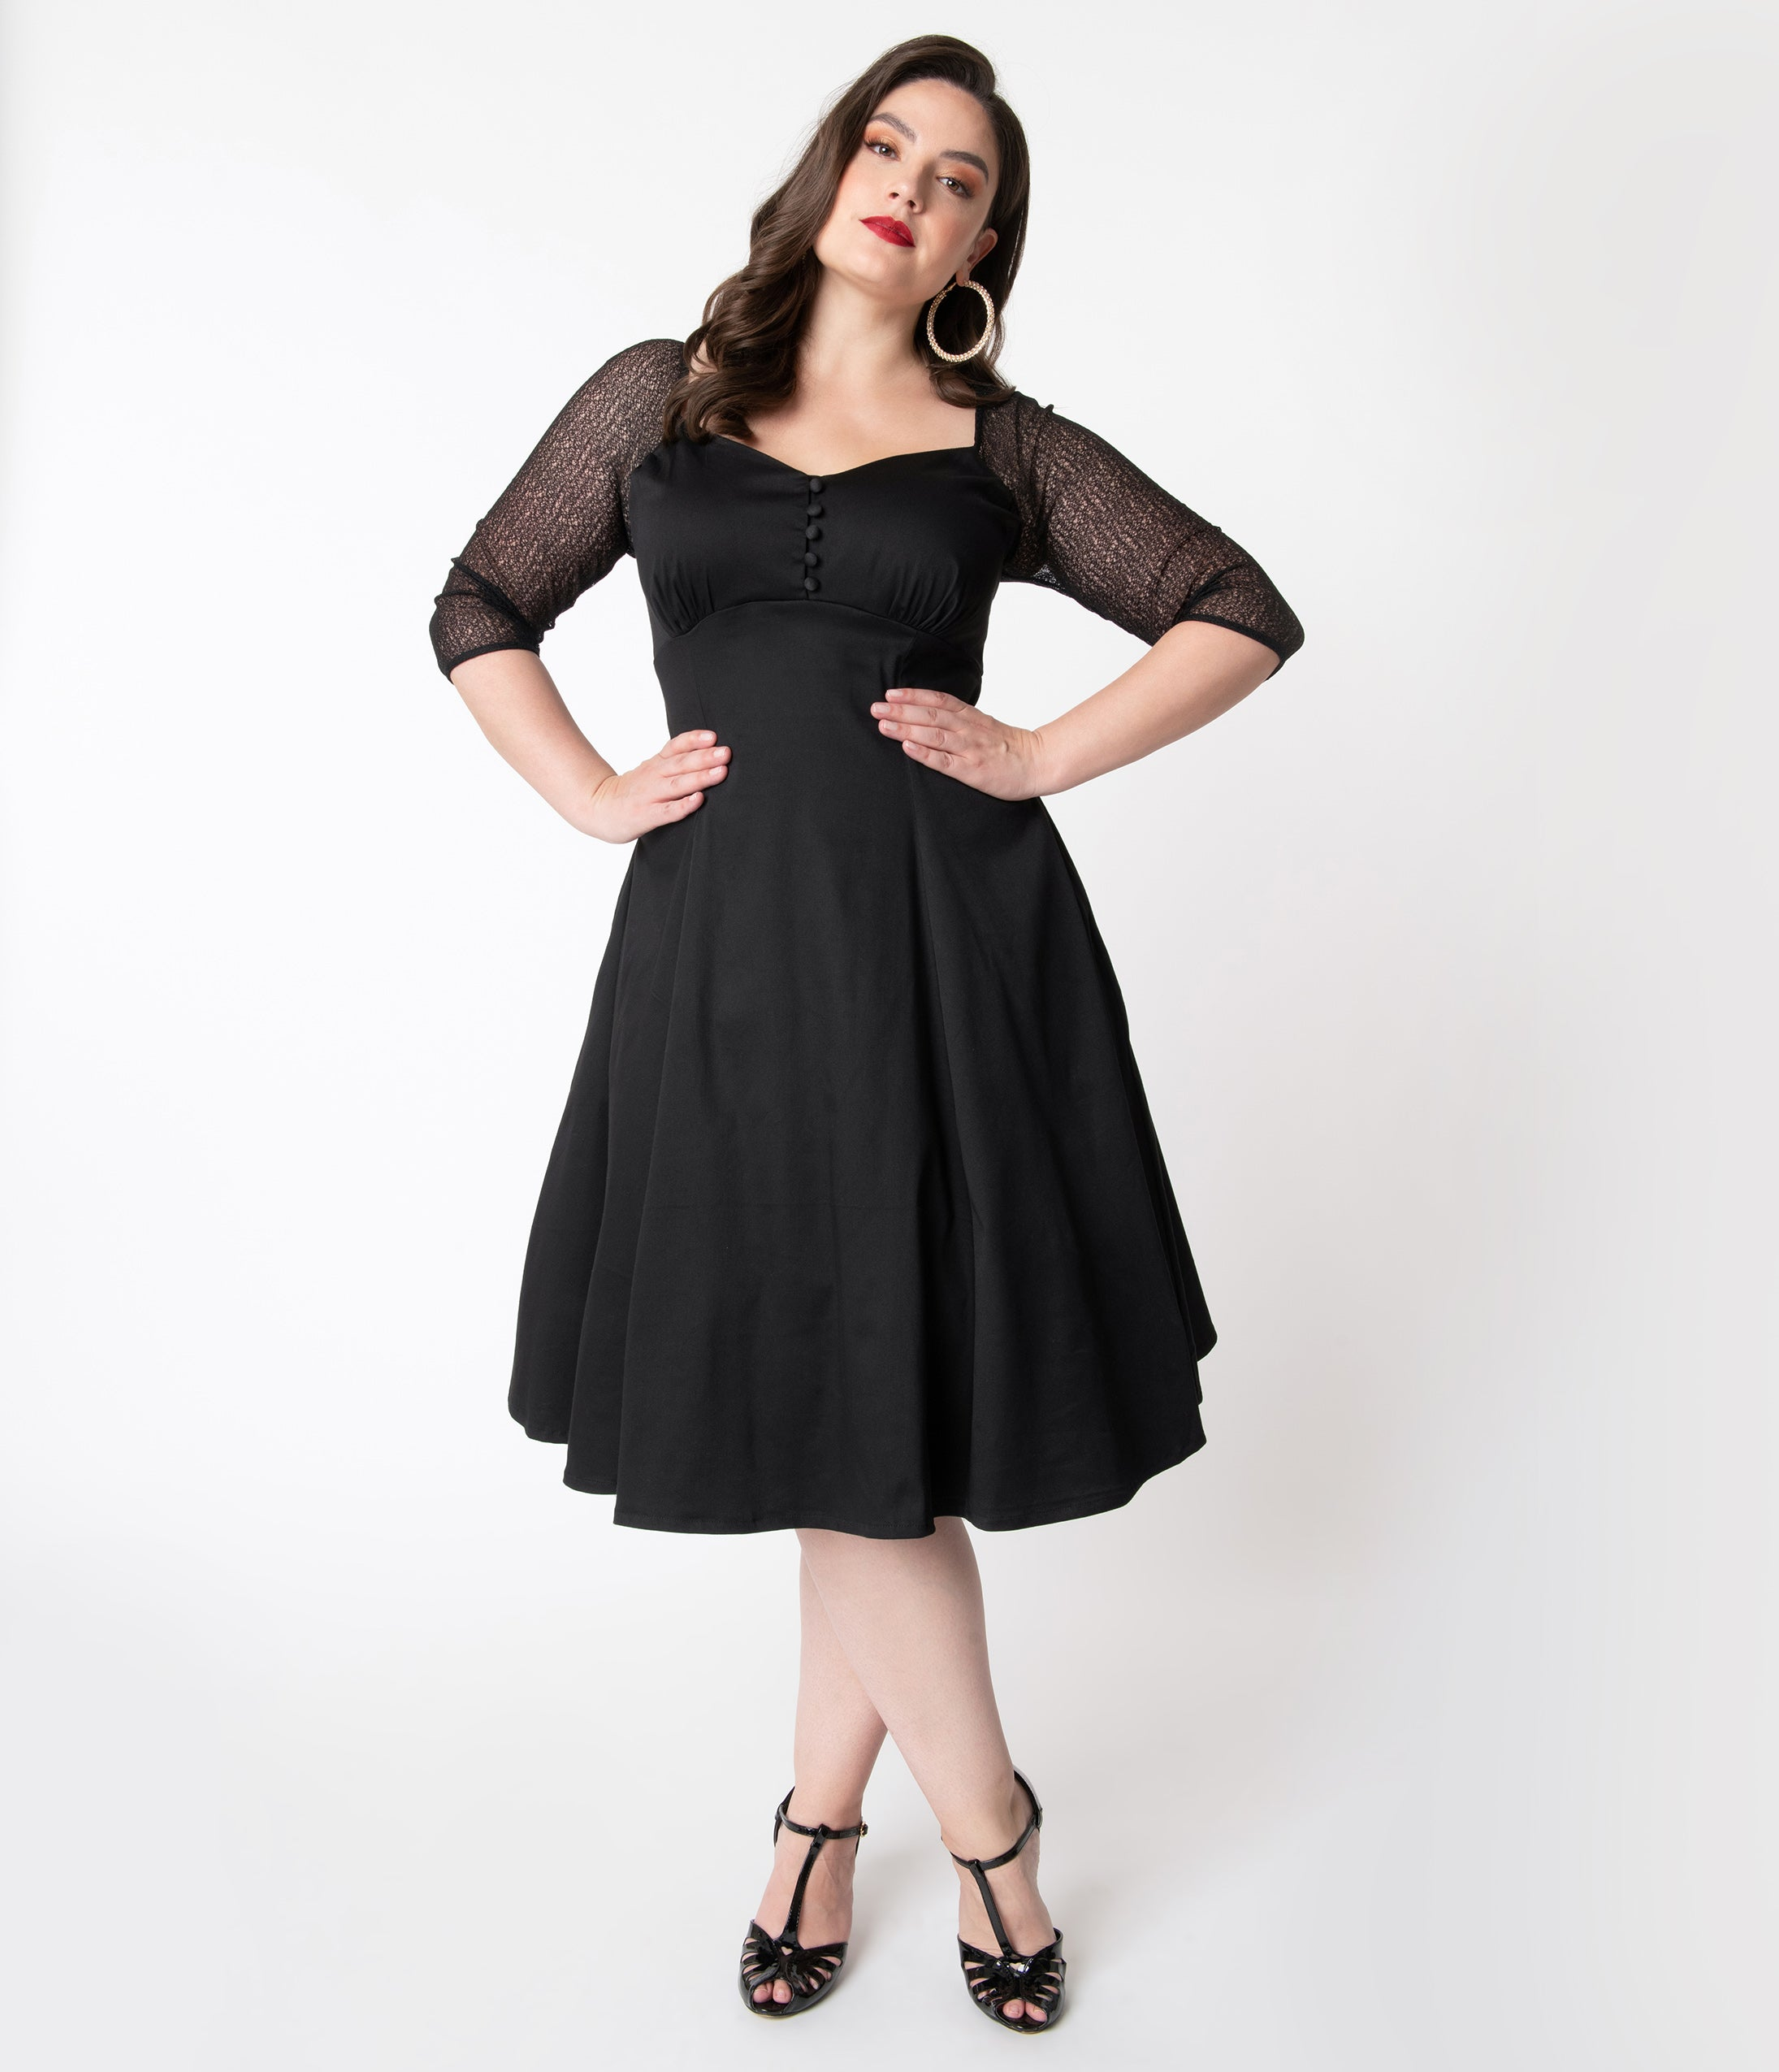 1940s Plus Size Dresses | Swing Dress, Tea Dress Retro Style Plus Size Black Charline Swing Dress $78.00 AT vintagedancer.com